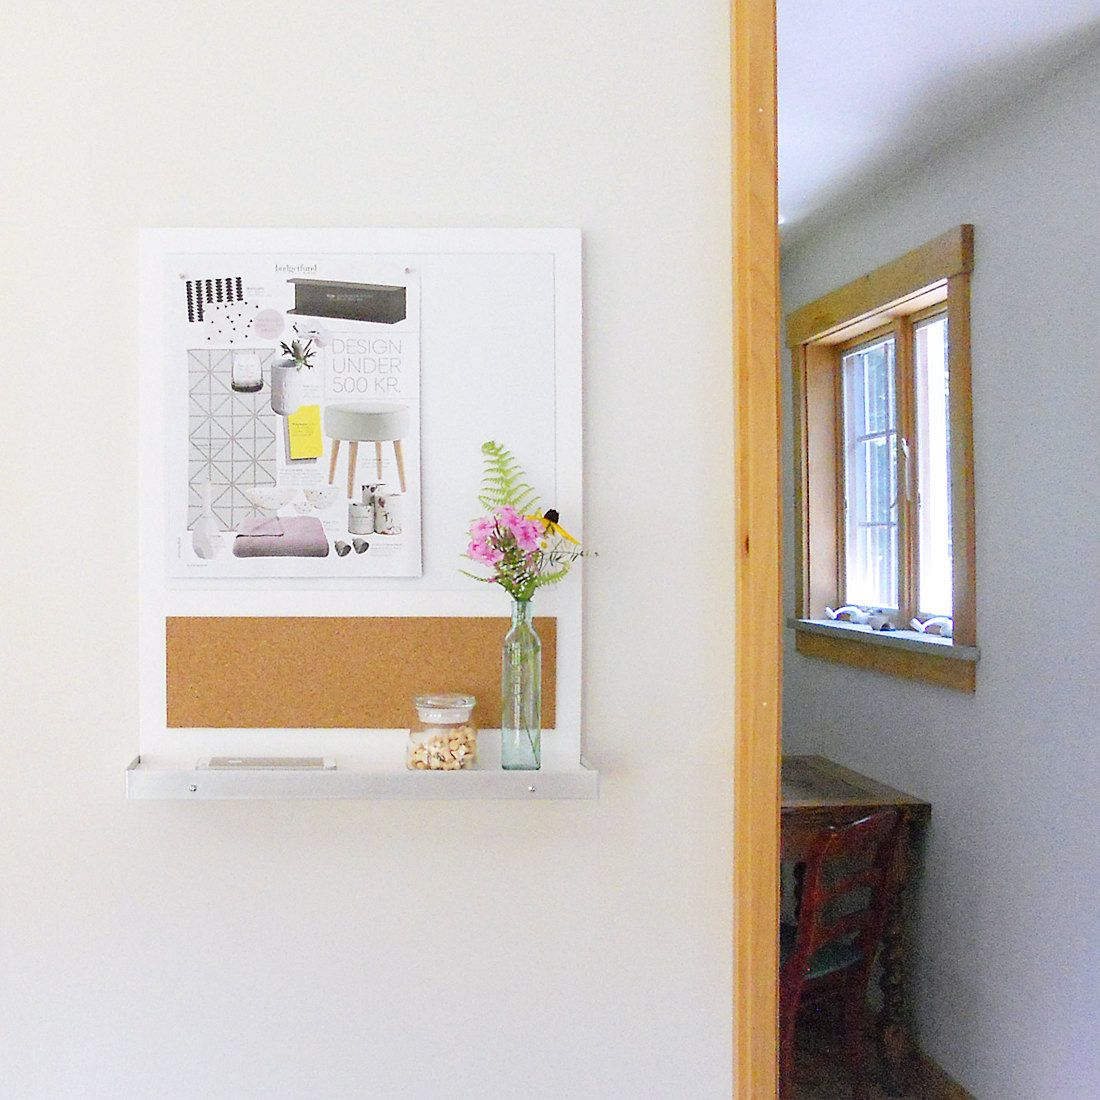 Whiteboard for Kitchen Wall Message Center